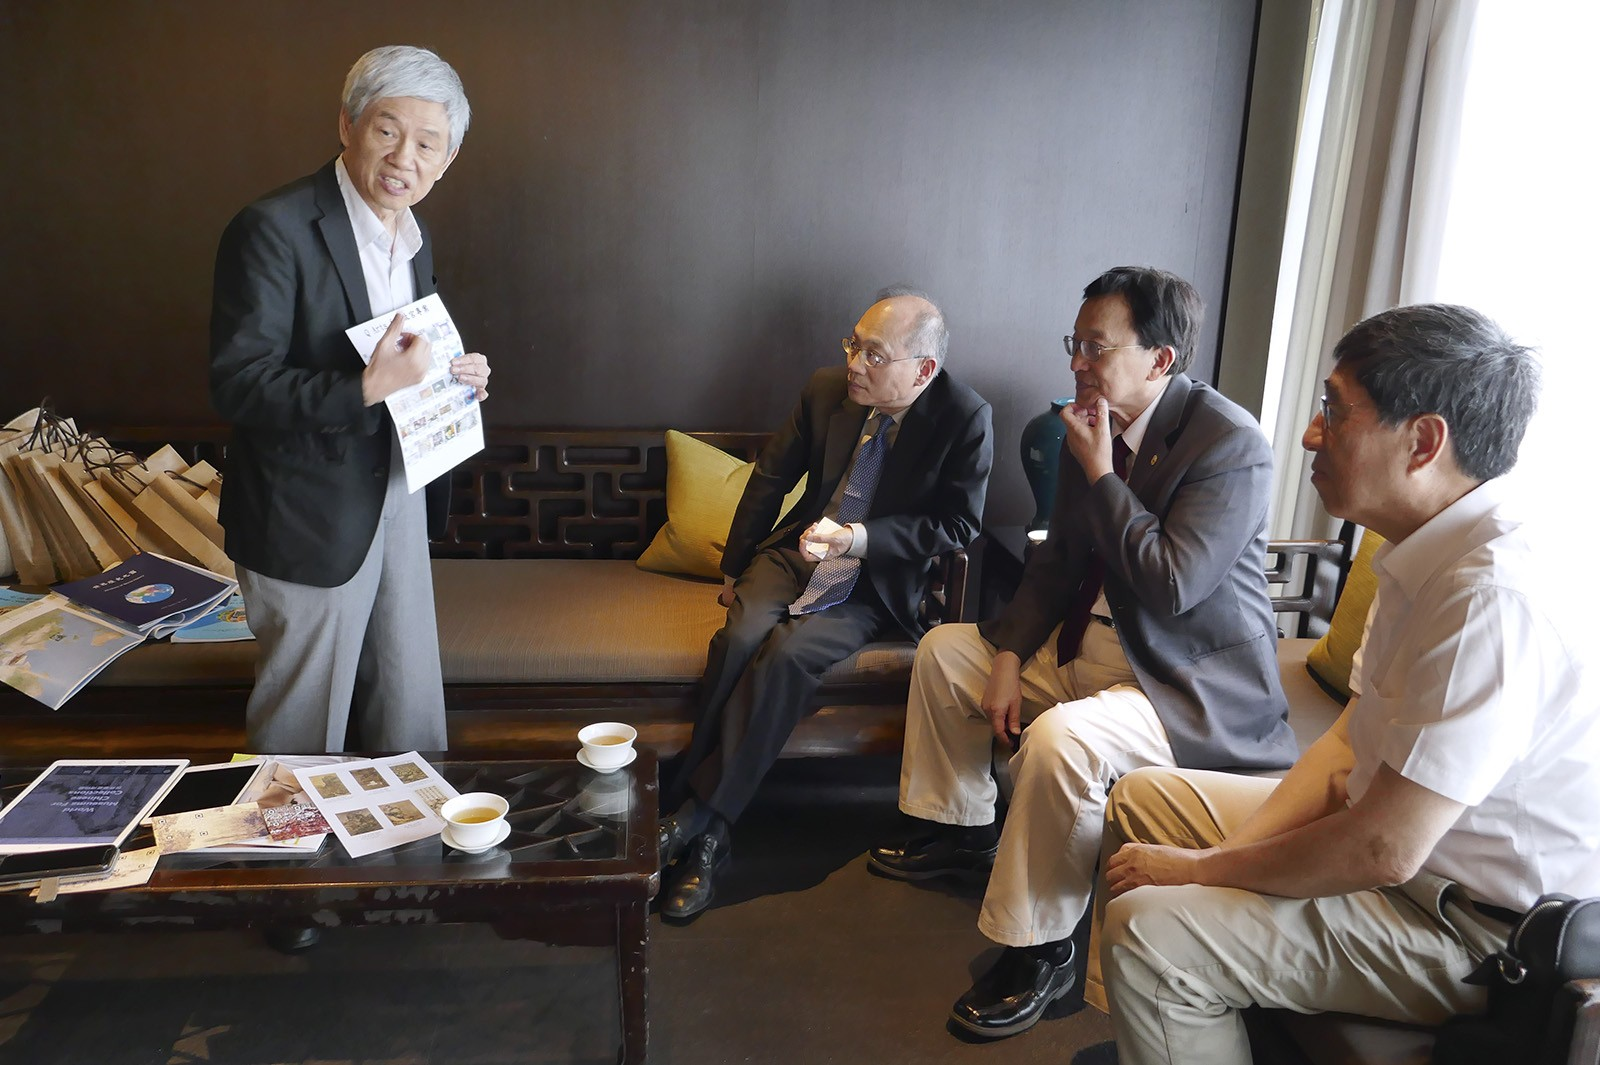 "(From right) Professor Kuo, President of CityU; Professor Chang, President of NCTU; and Mr Wu, Director of NPM discuss how to collaborate on the project ""Digitising Palace Museum"". Professor Li, Chair Professor of the Institute of Information Management at NCTU, presents the main objectives of the project."